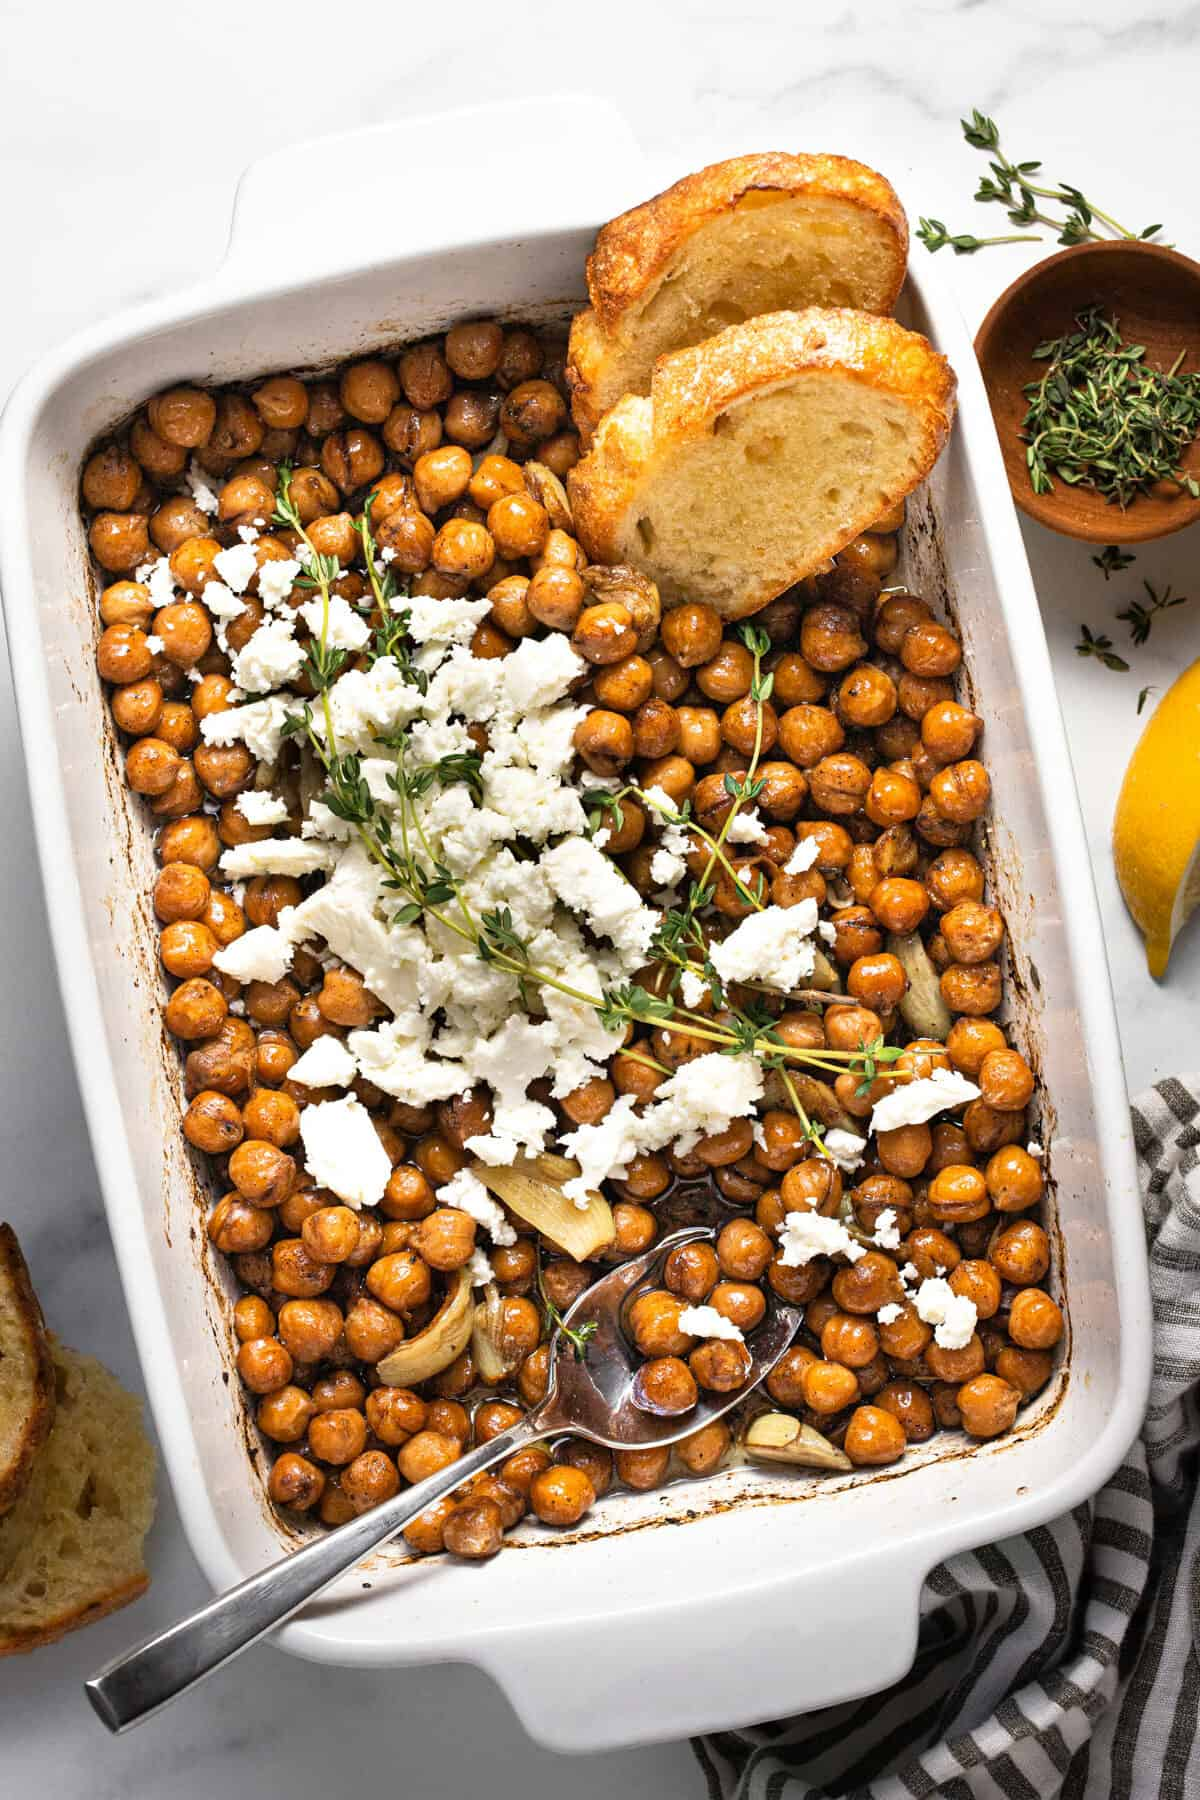 Large baking dish filled with braised chickpeas topped with feta and herbs